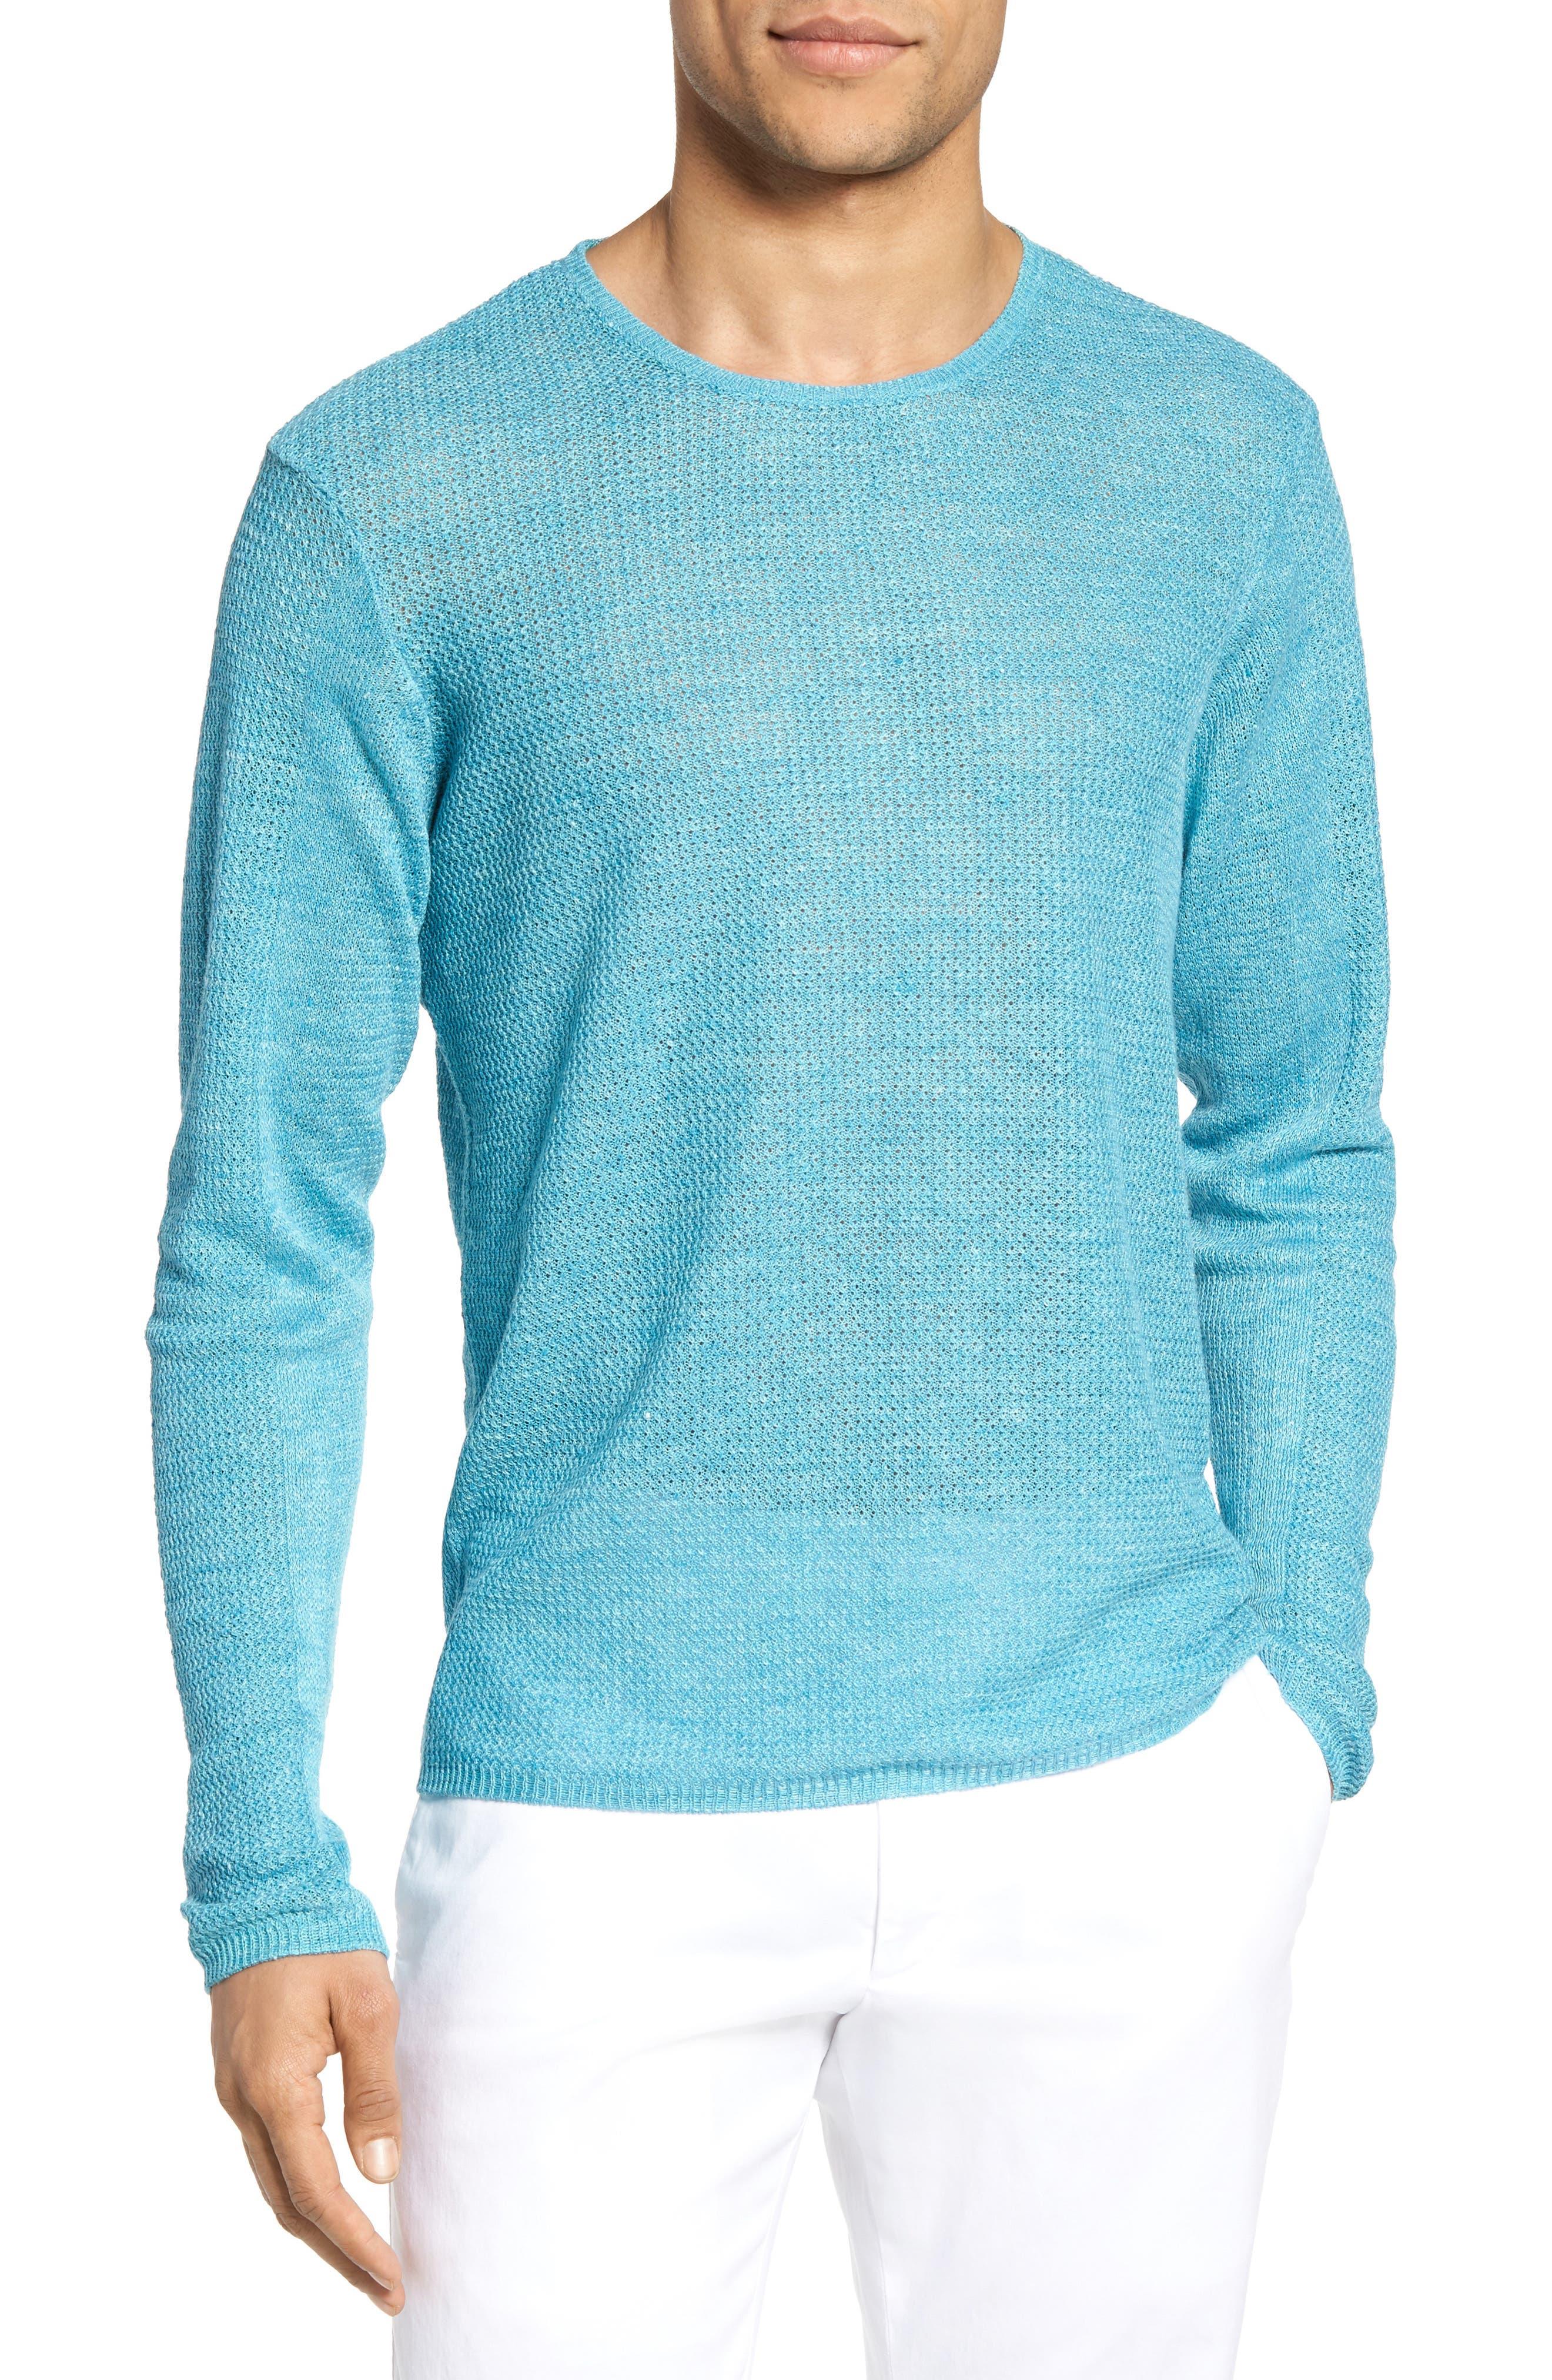 ZACHARY PRELL Chapman Linen Sweater, Main, color, 439